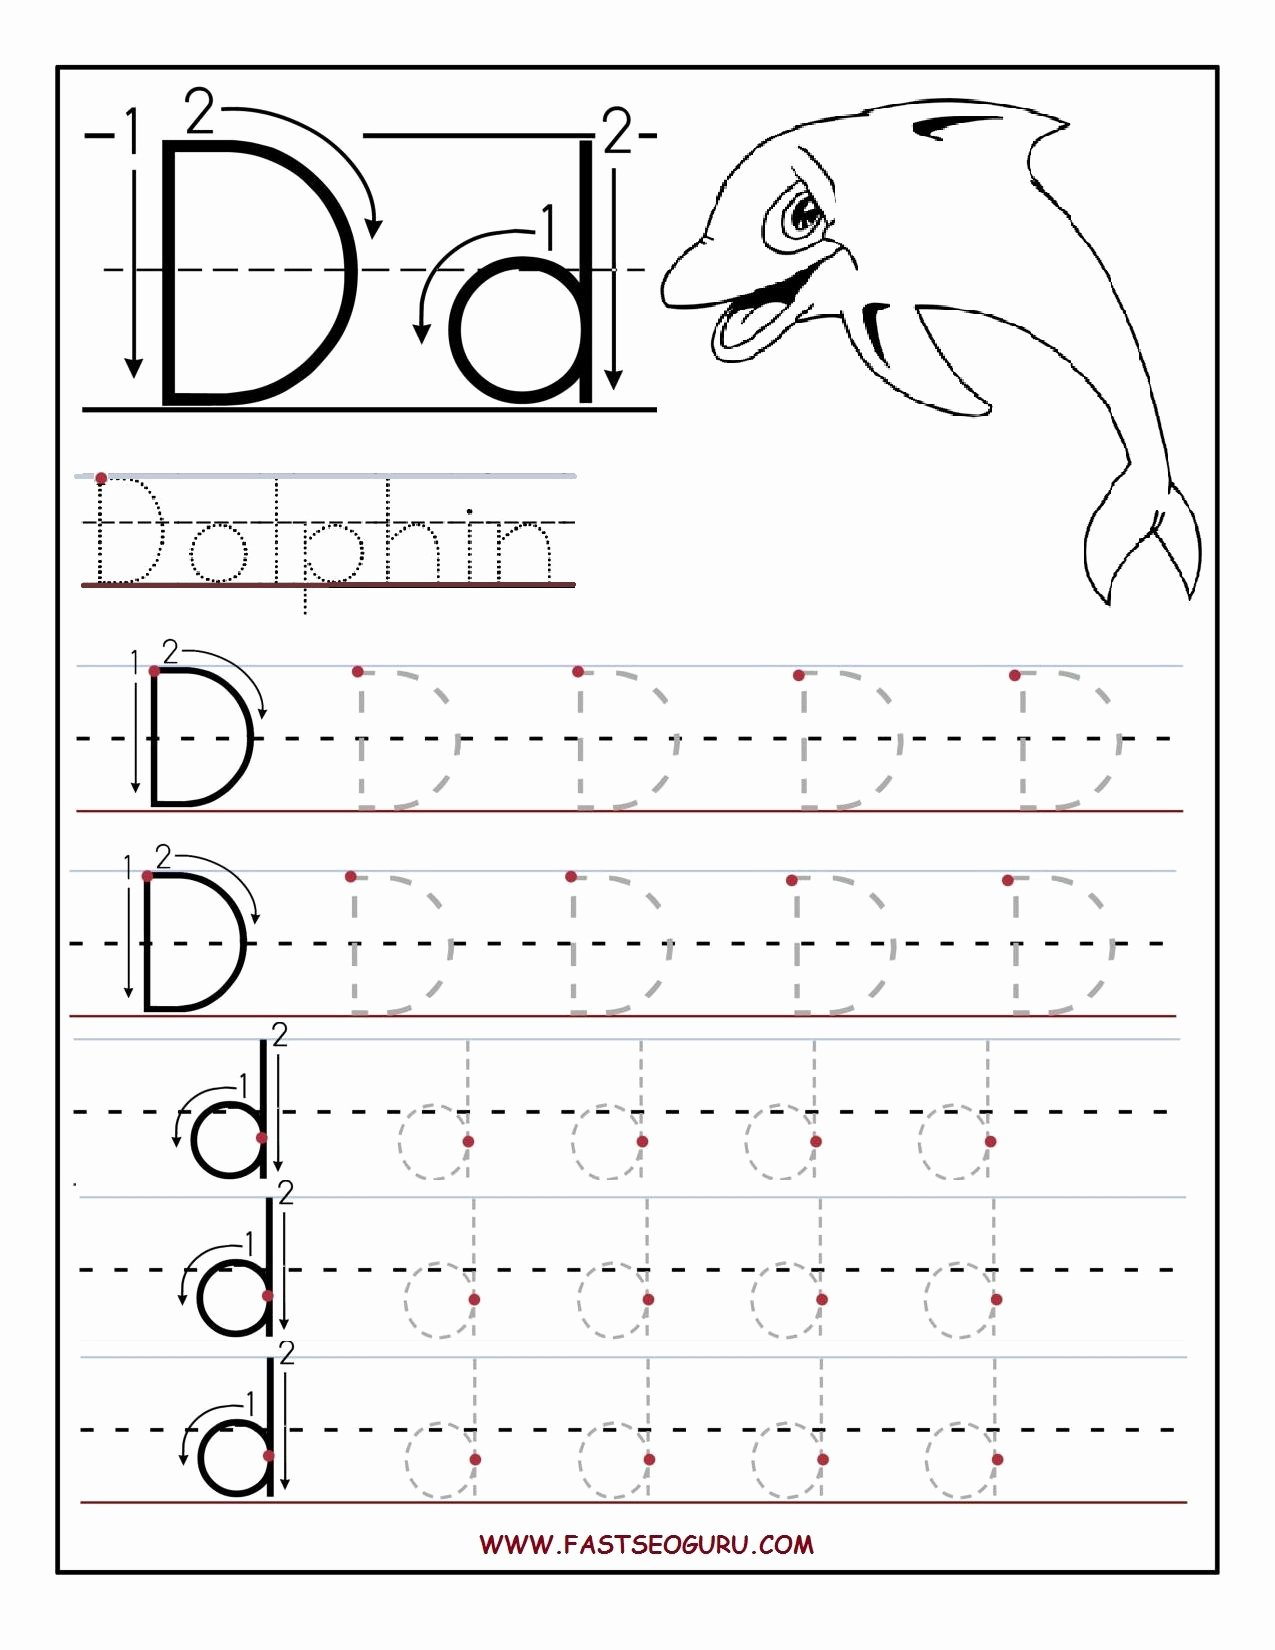 Letter D Tracing Worksheets for Preschoolers Awesome Preschool Alphabet Worksheets Printables Printable Letter A